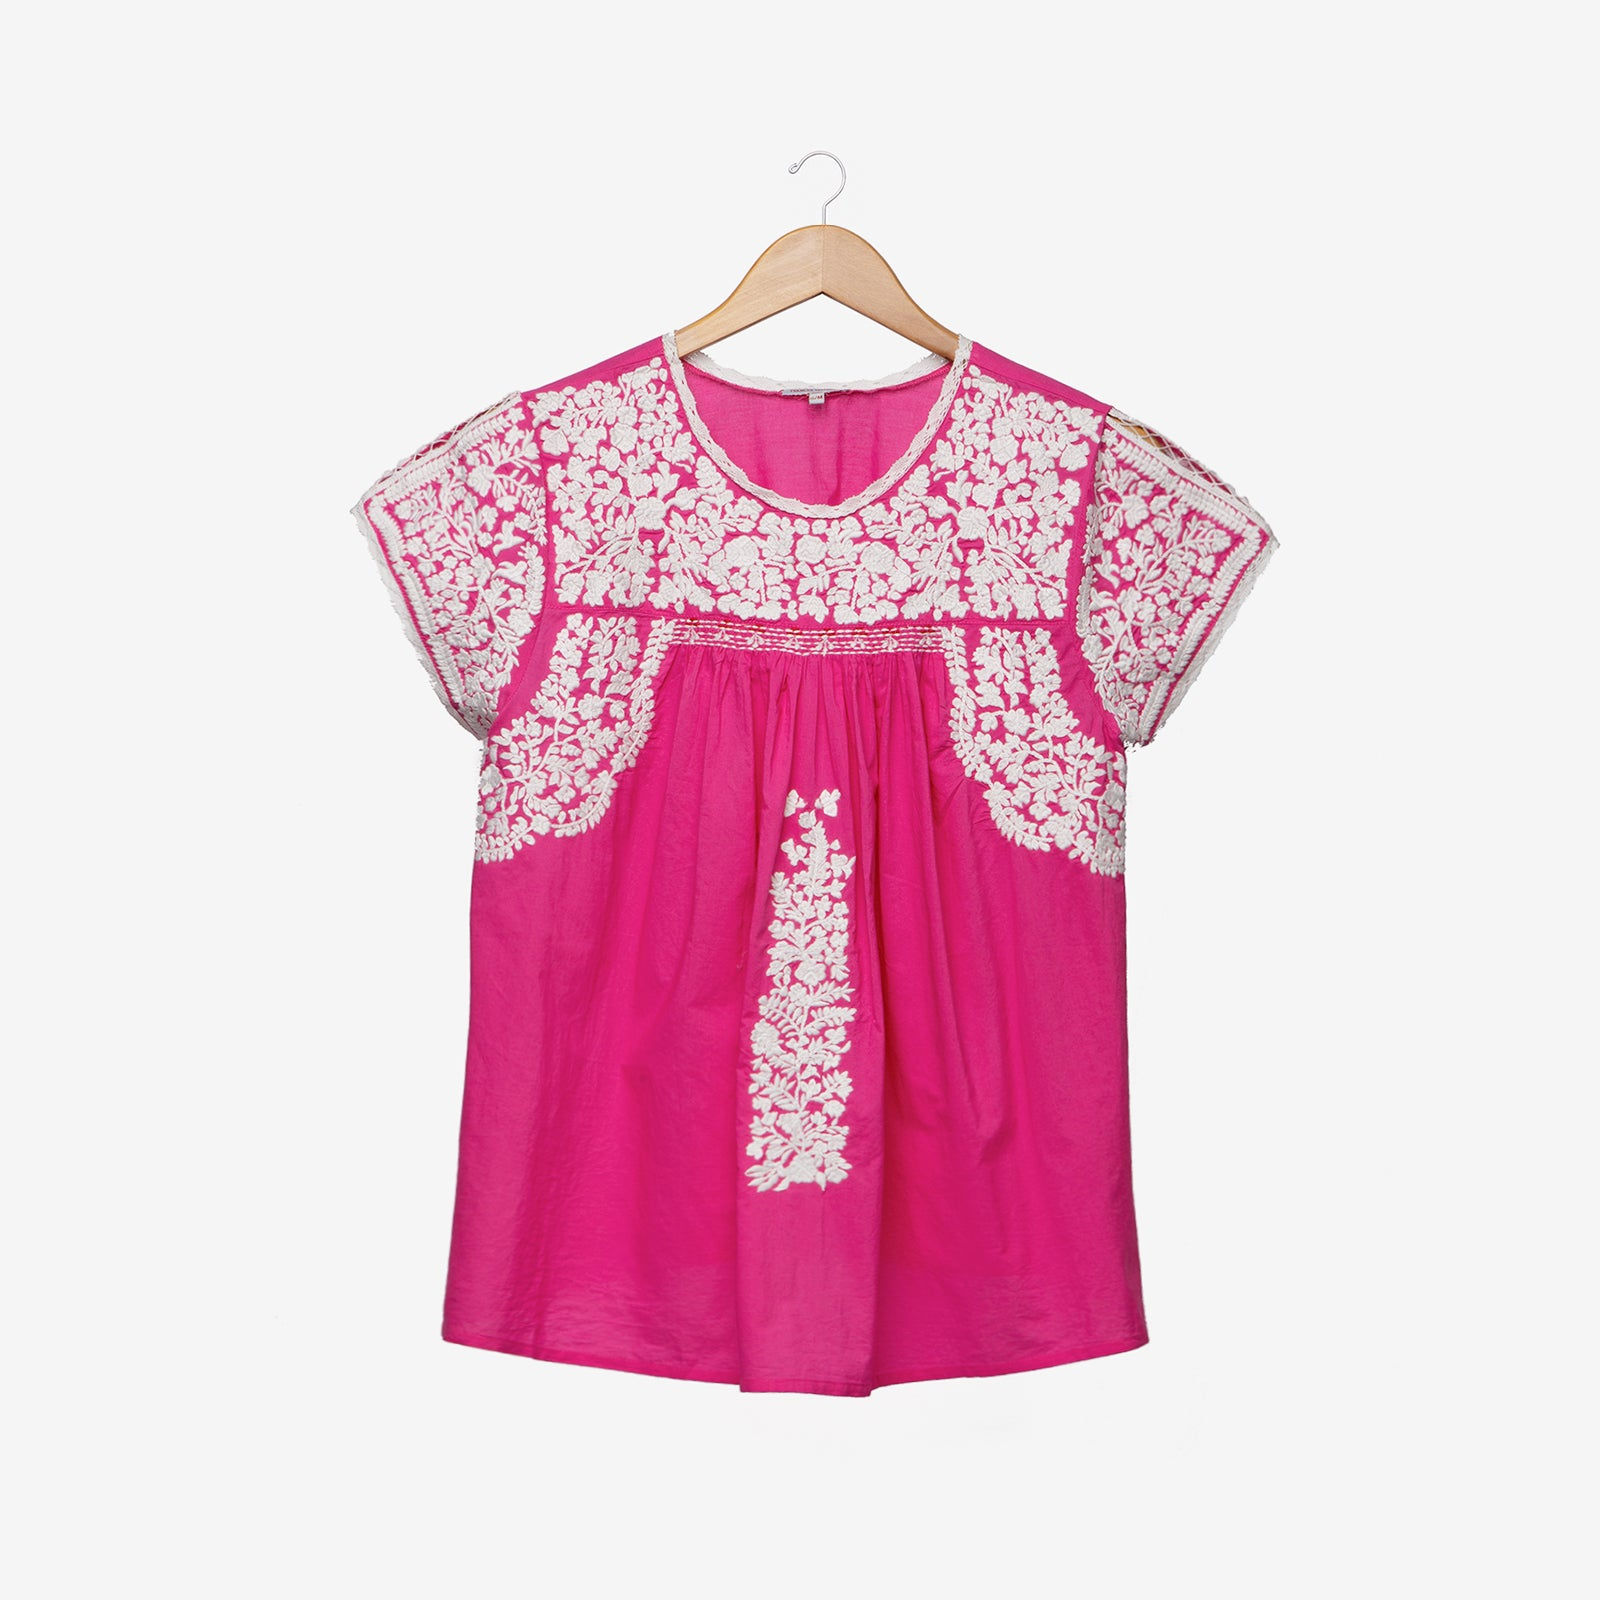 Floral Embroidered Lace Top Pink Oyster